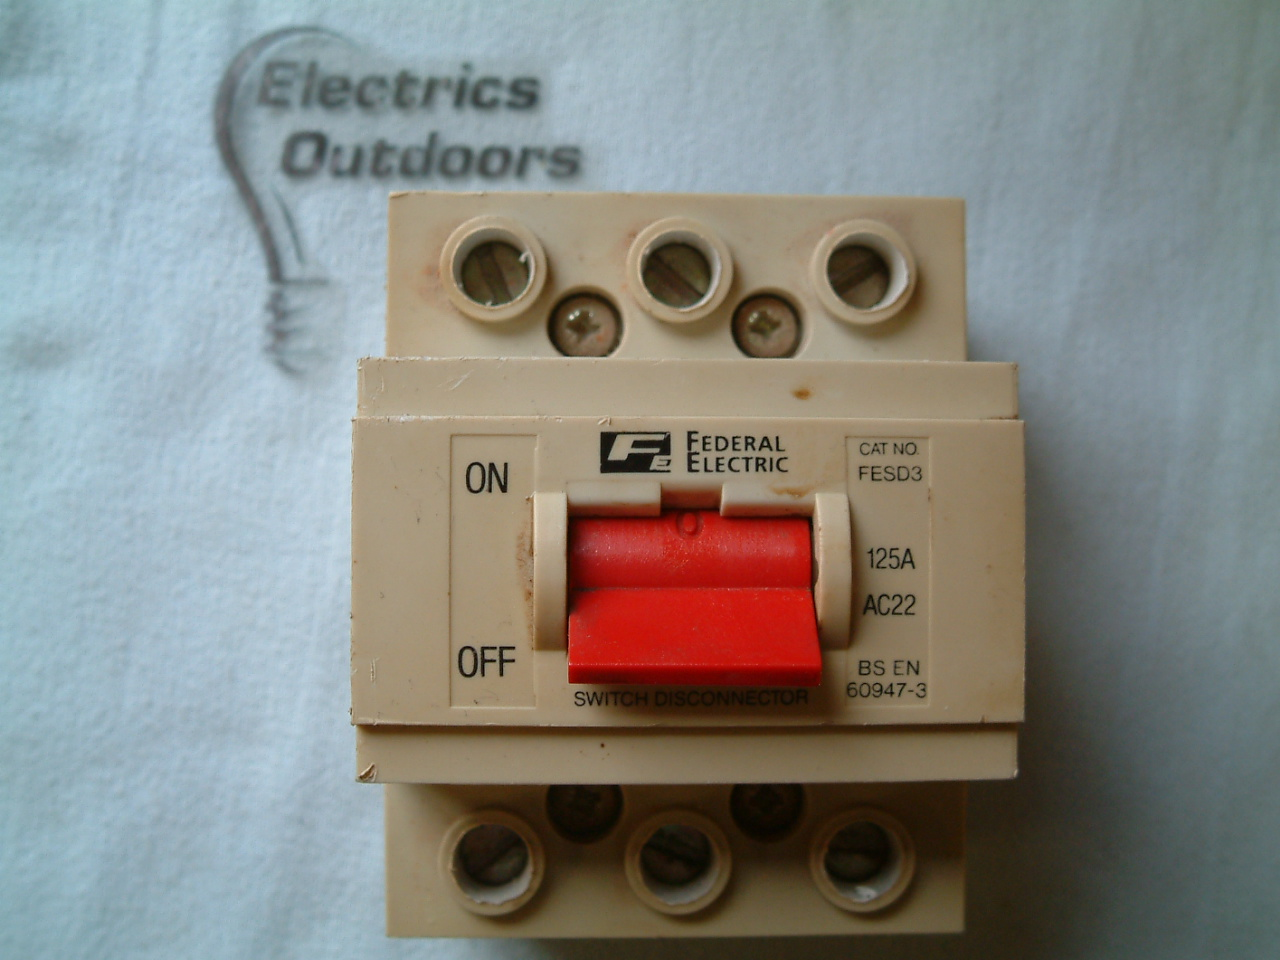 FEDERAL ELECTRIC 125 AMP MAIN SWITCH DISCONNECTOR 240/415V FESD3 BS EN 60947